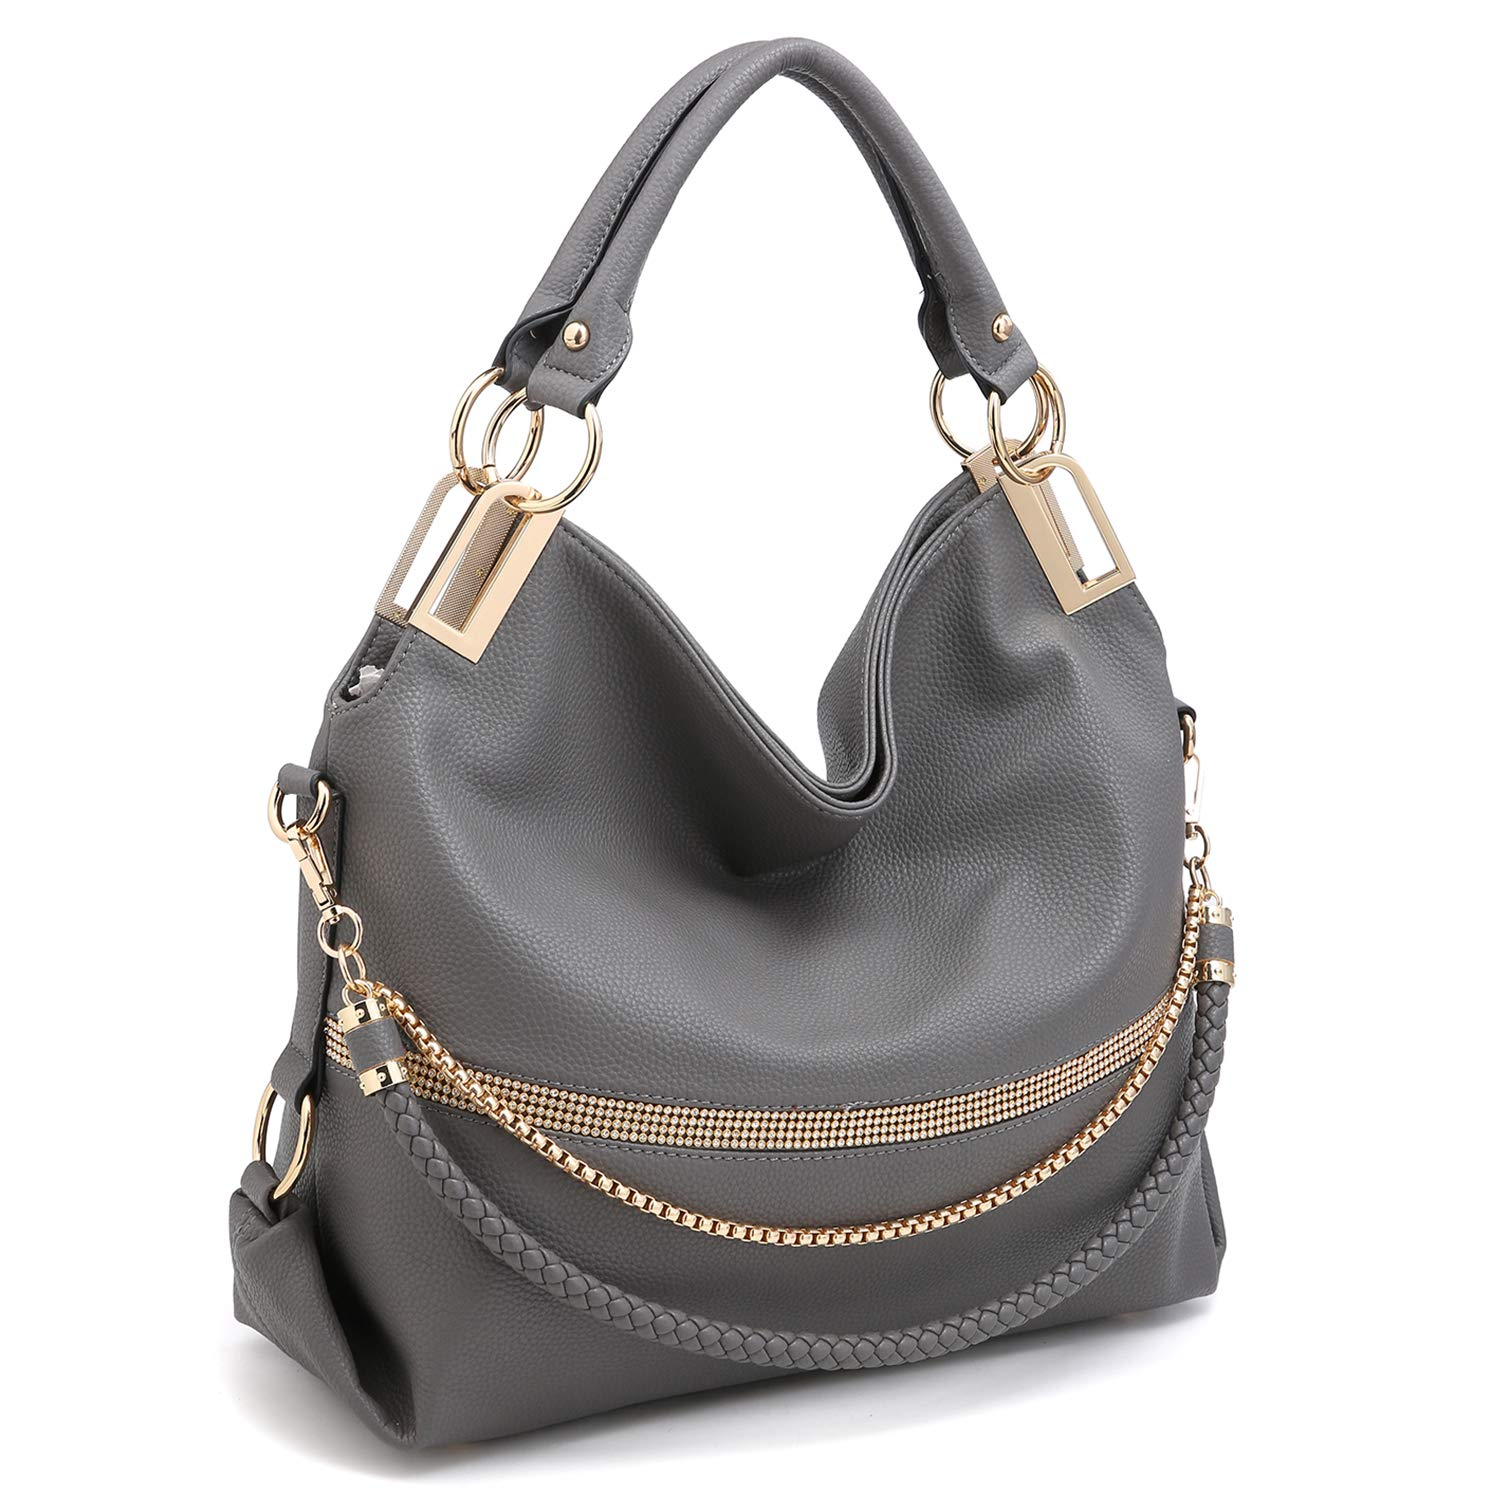 Dasein Women's Classic Large Hobo Bag Rhinestone Chain Shoulder Bag Top Handle Purse w/Shoulder Strap (Grey)